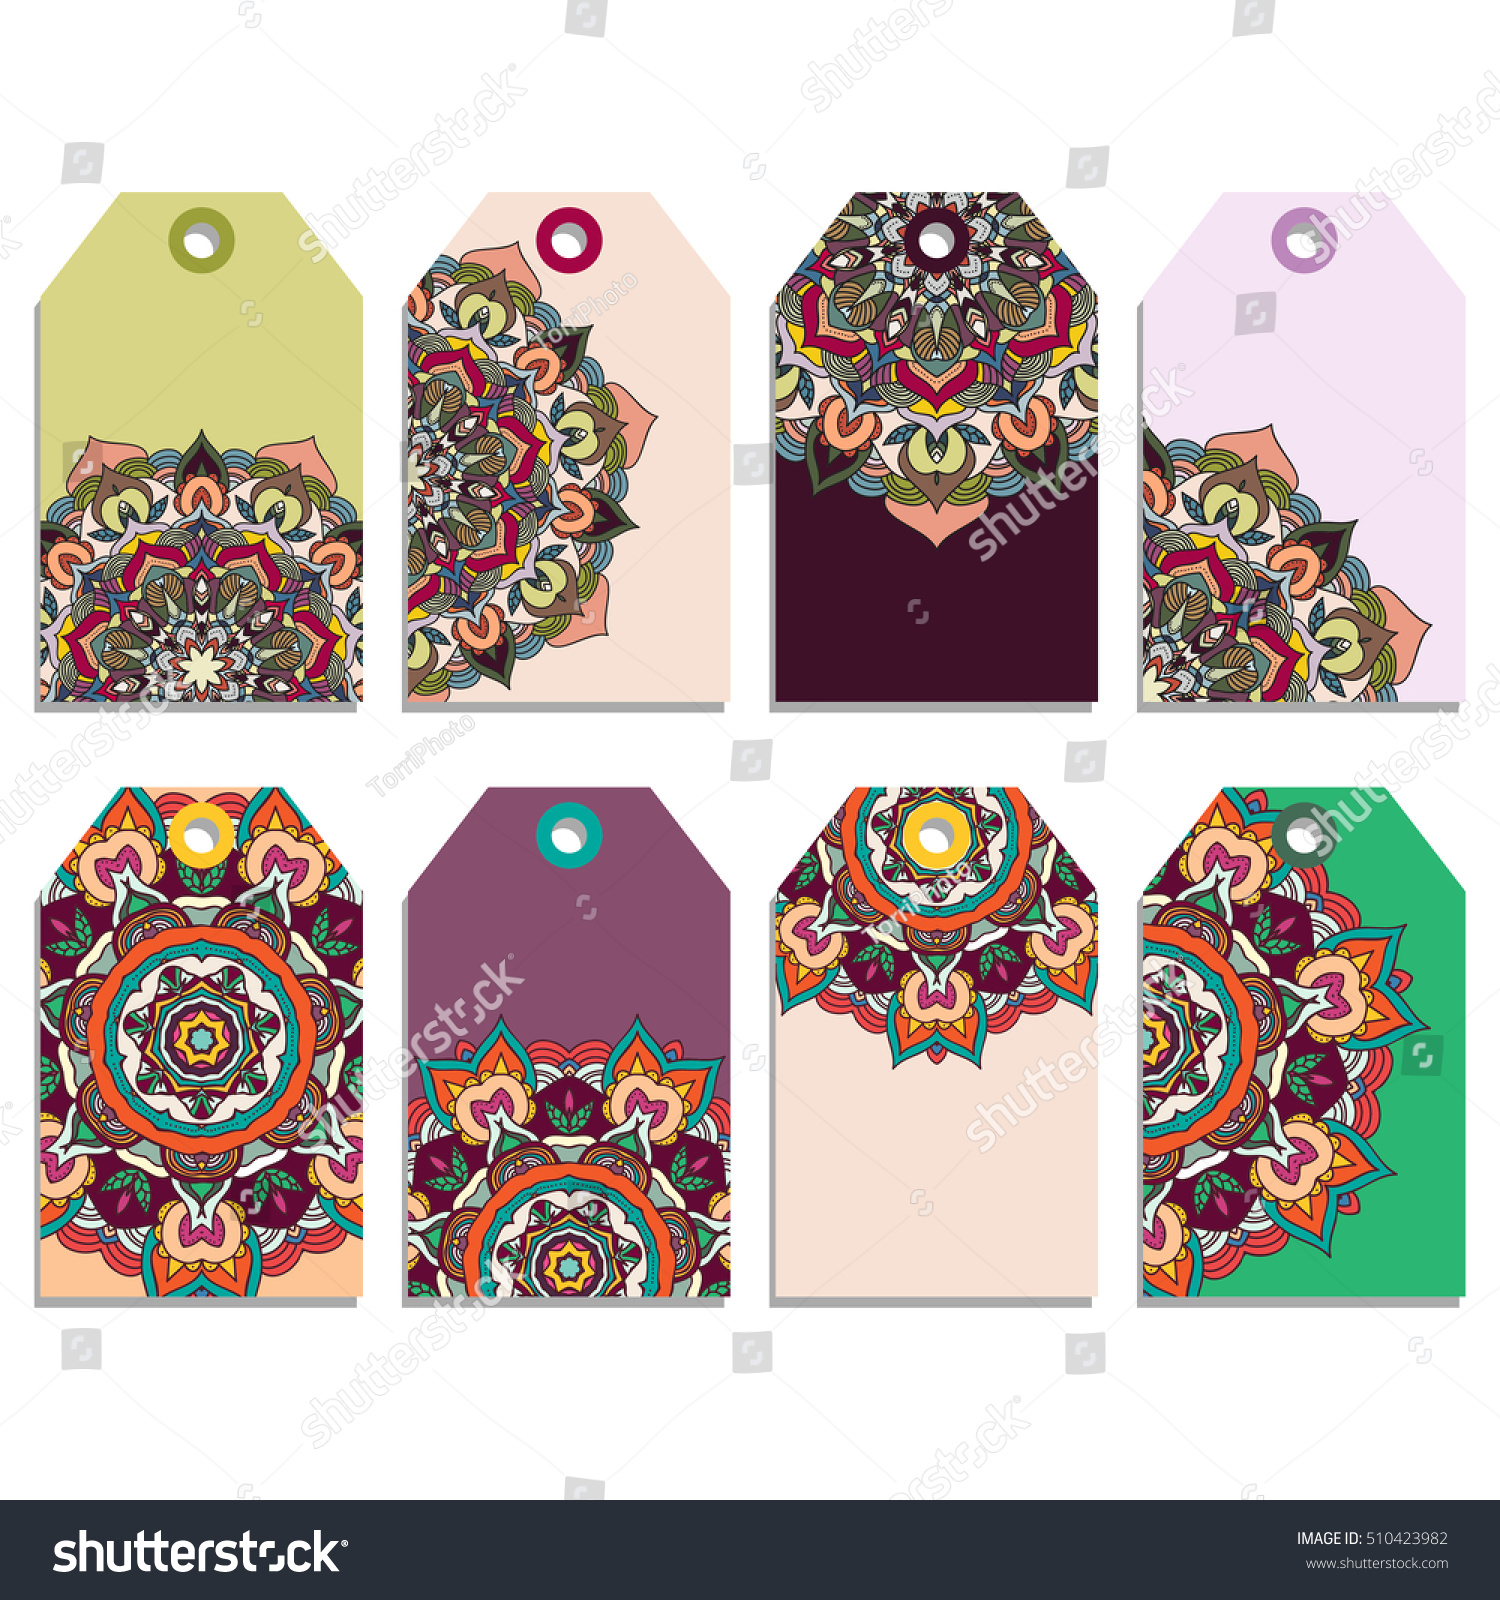 https://www.shutterstock.com/pic-510423982/stock-vector-set-of-gift-tags-with-colorful-mandala-design-vector-illustration-eps-8.html?